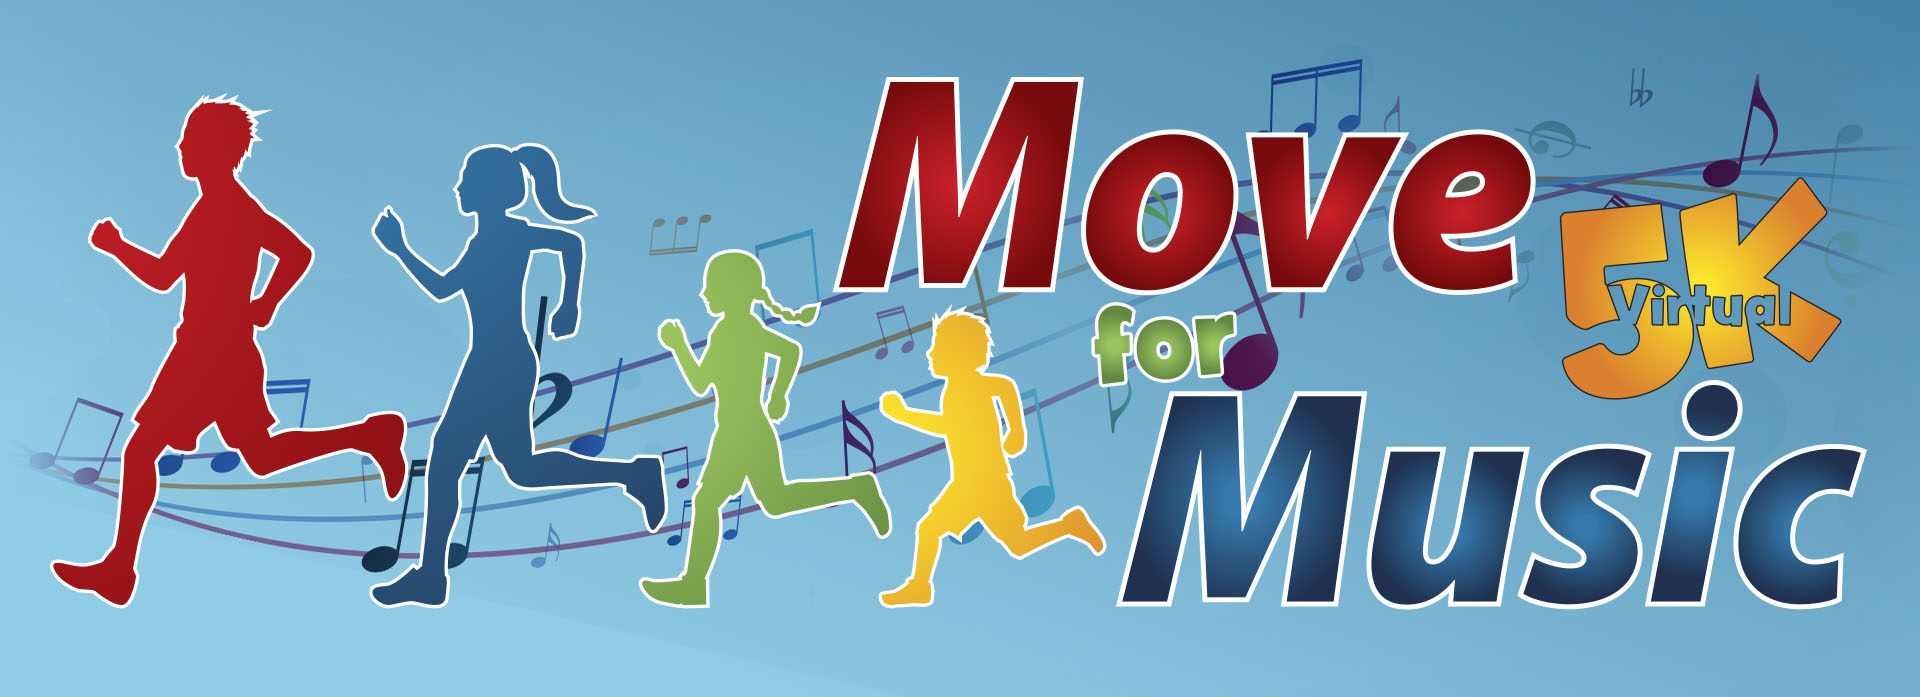 Move for Music Virtual 5k Graphic